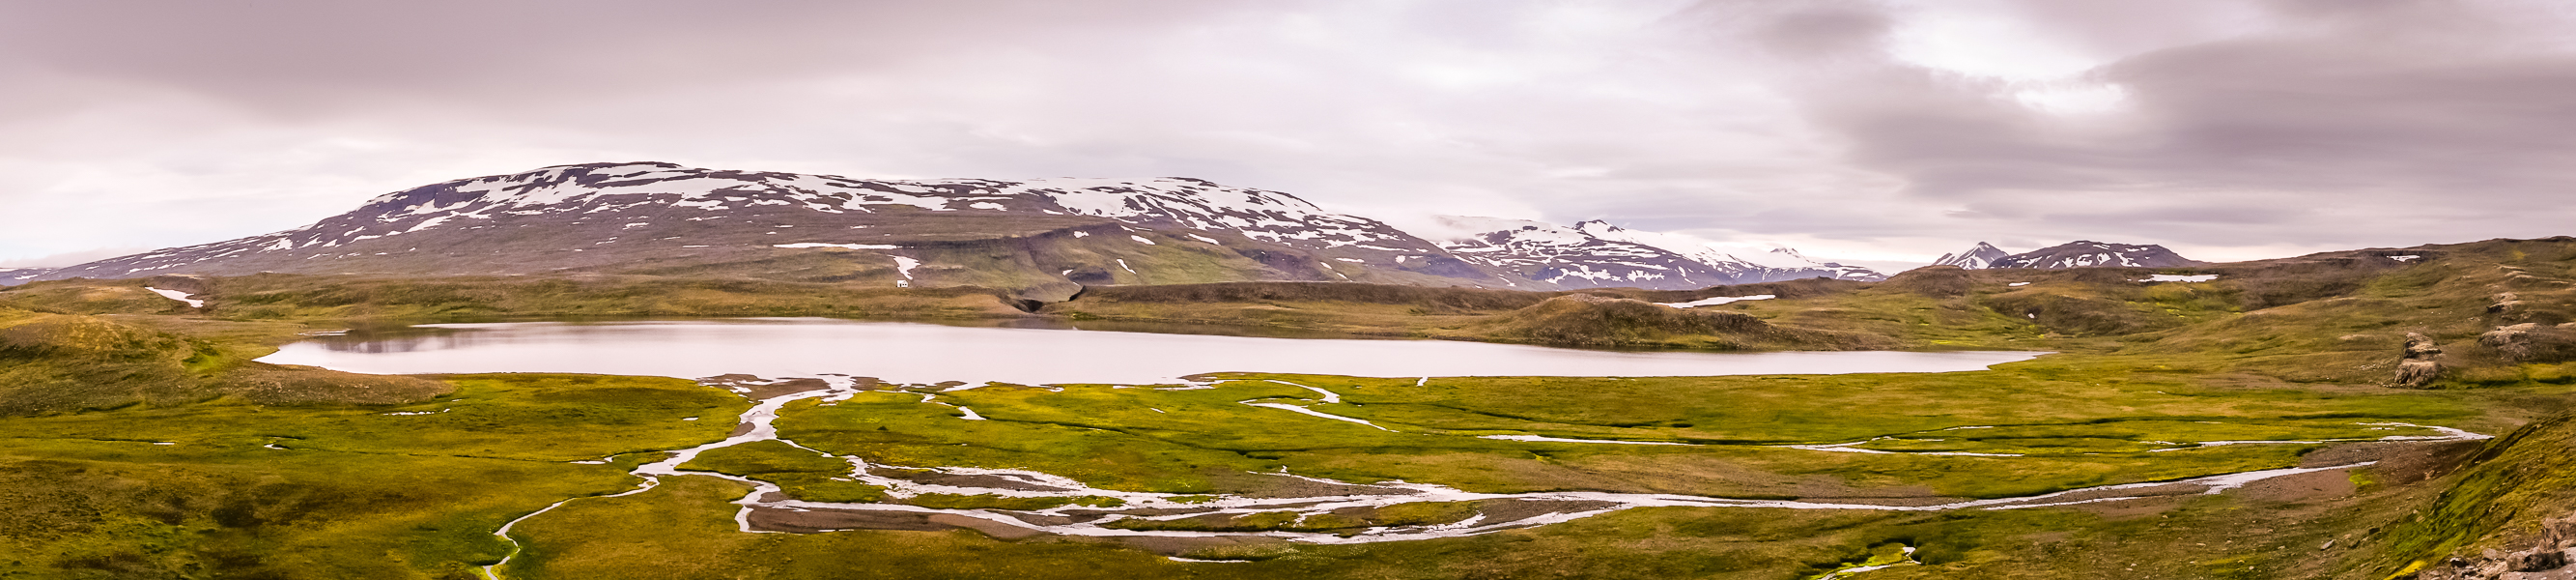 Panoramic view over lake in front of Egilssel Hut - Day 2 of In the Shadow of Vatnajökull trek - East Iceland